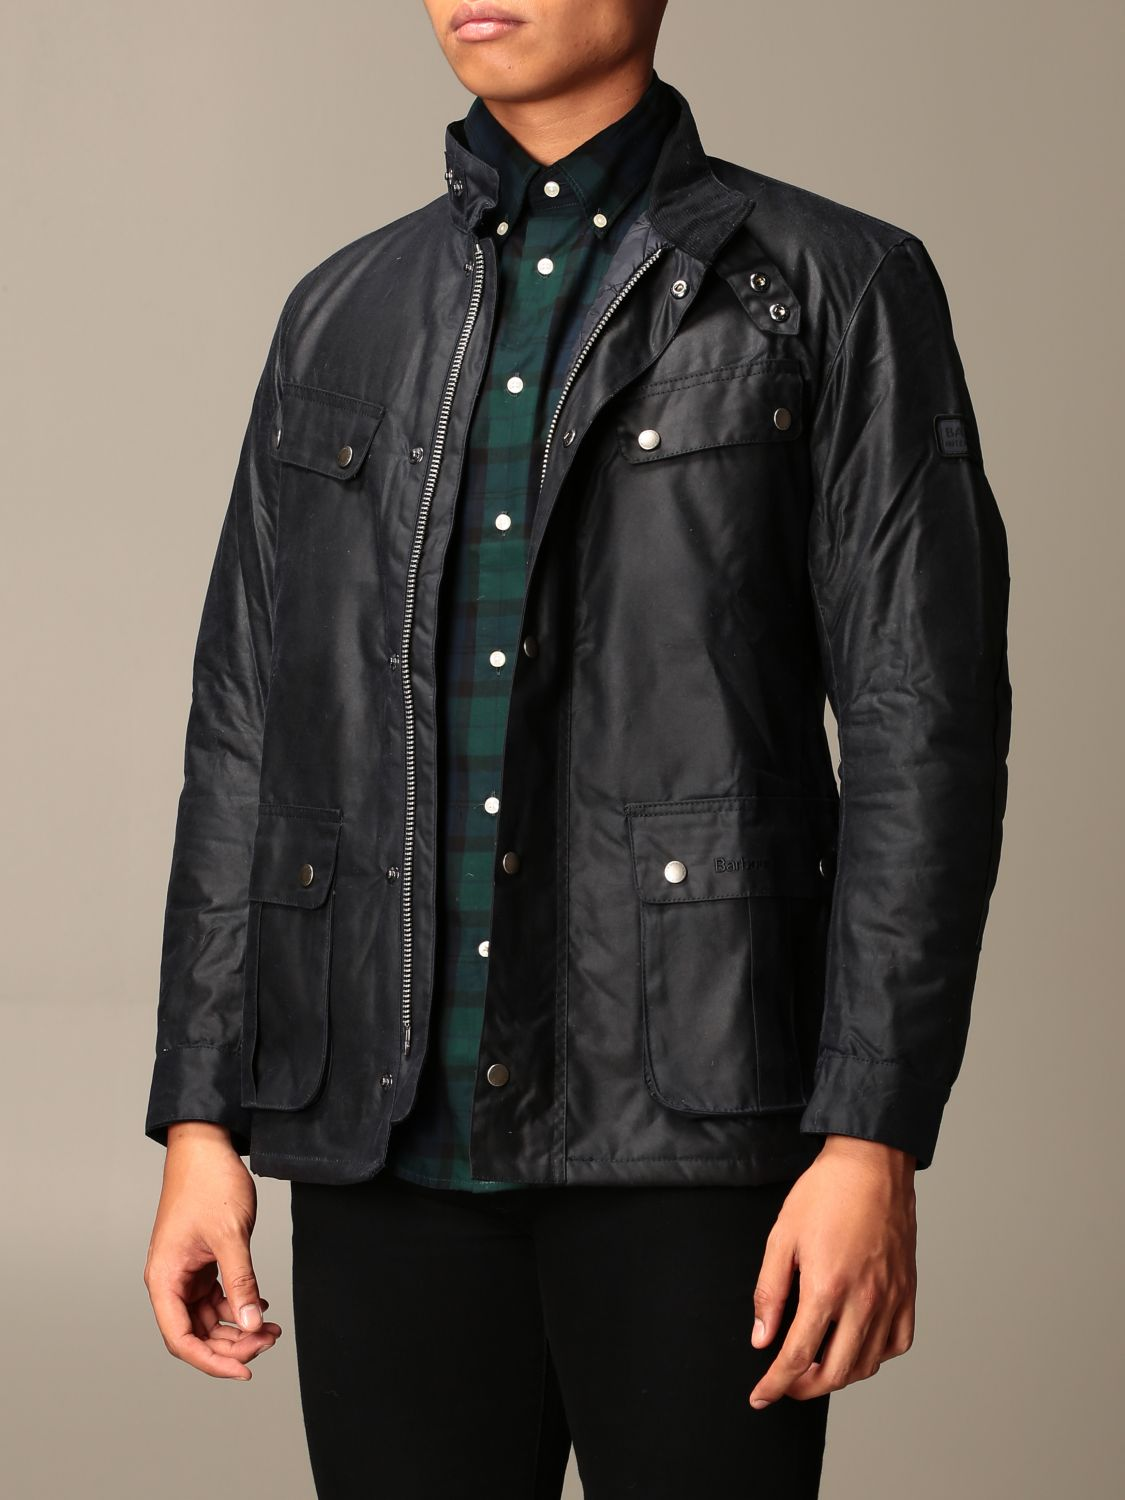 Jacket Barbour: Jacket men Barbour blue 3